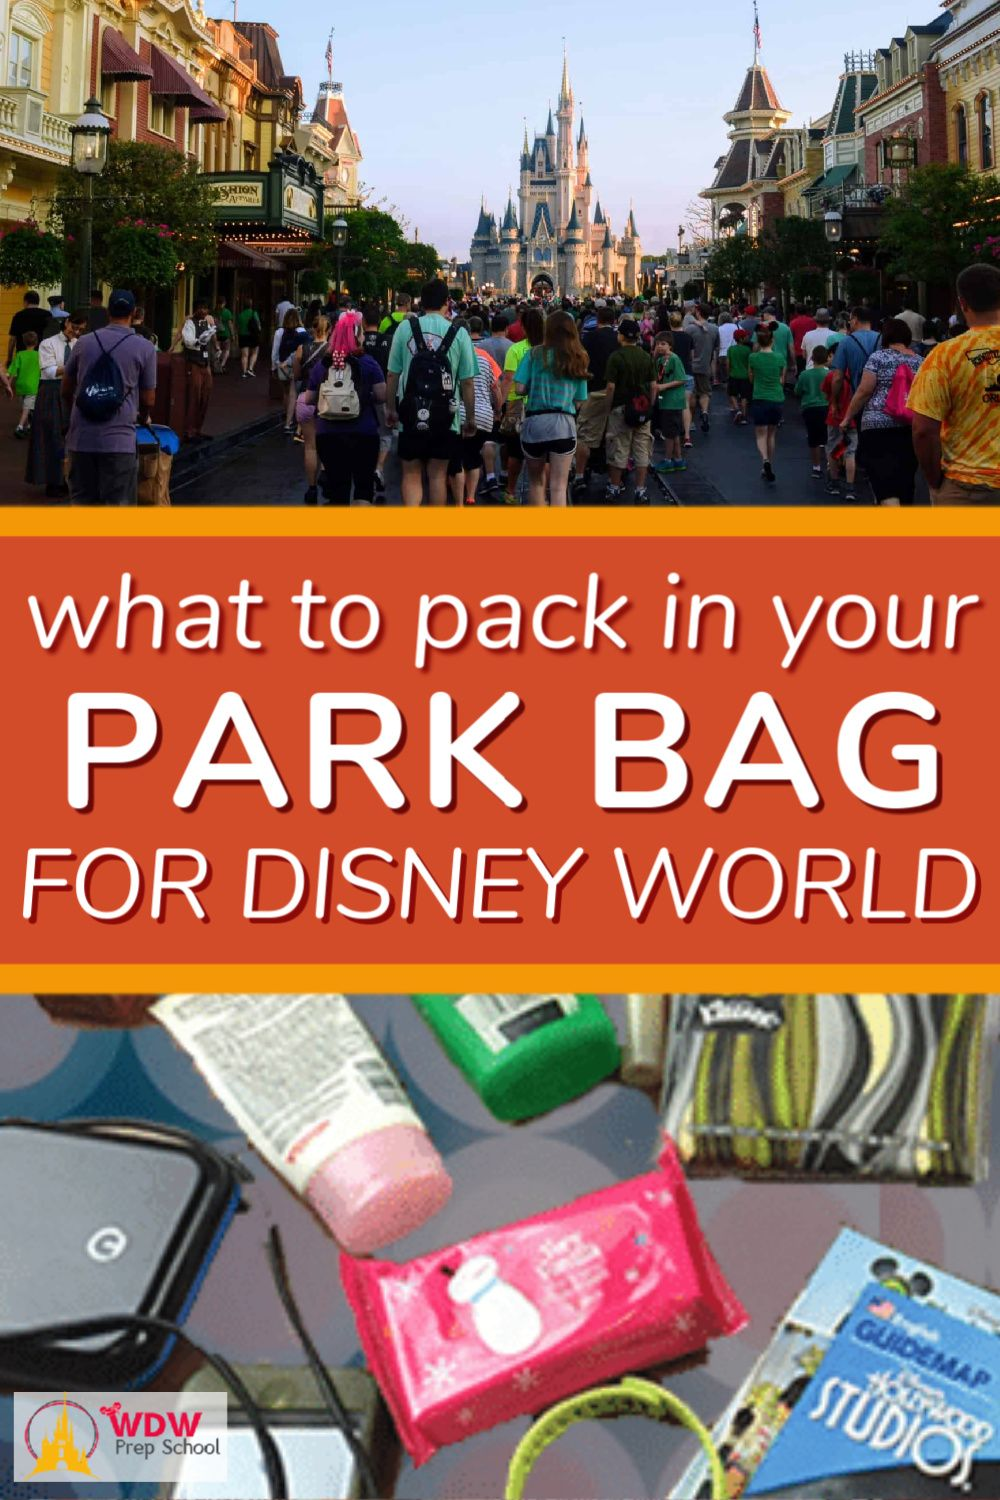 What to pack in your Disney World park bag (no minimalists